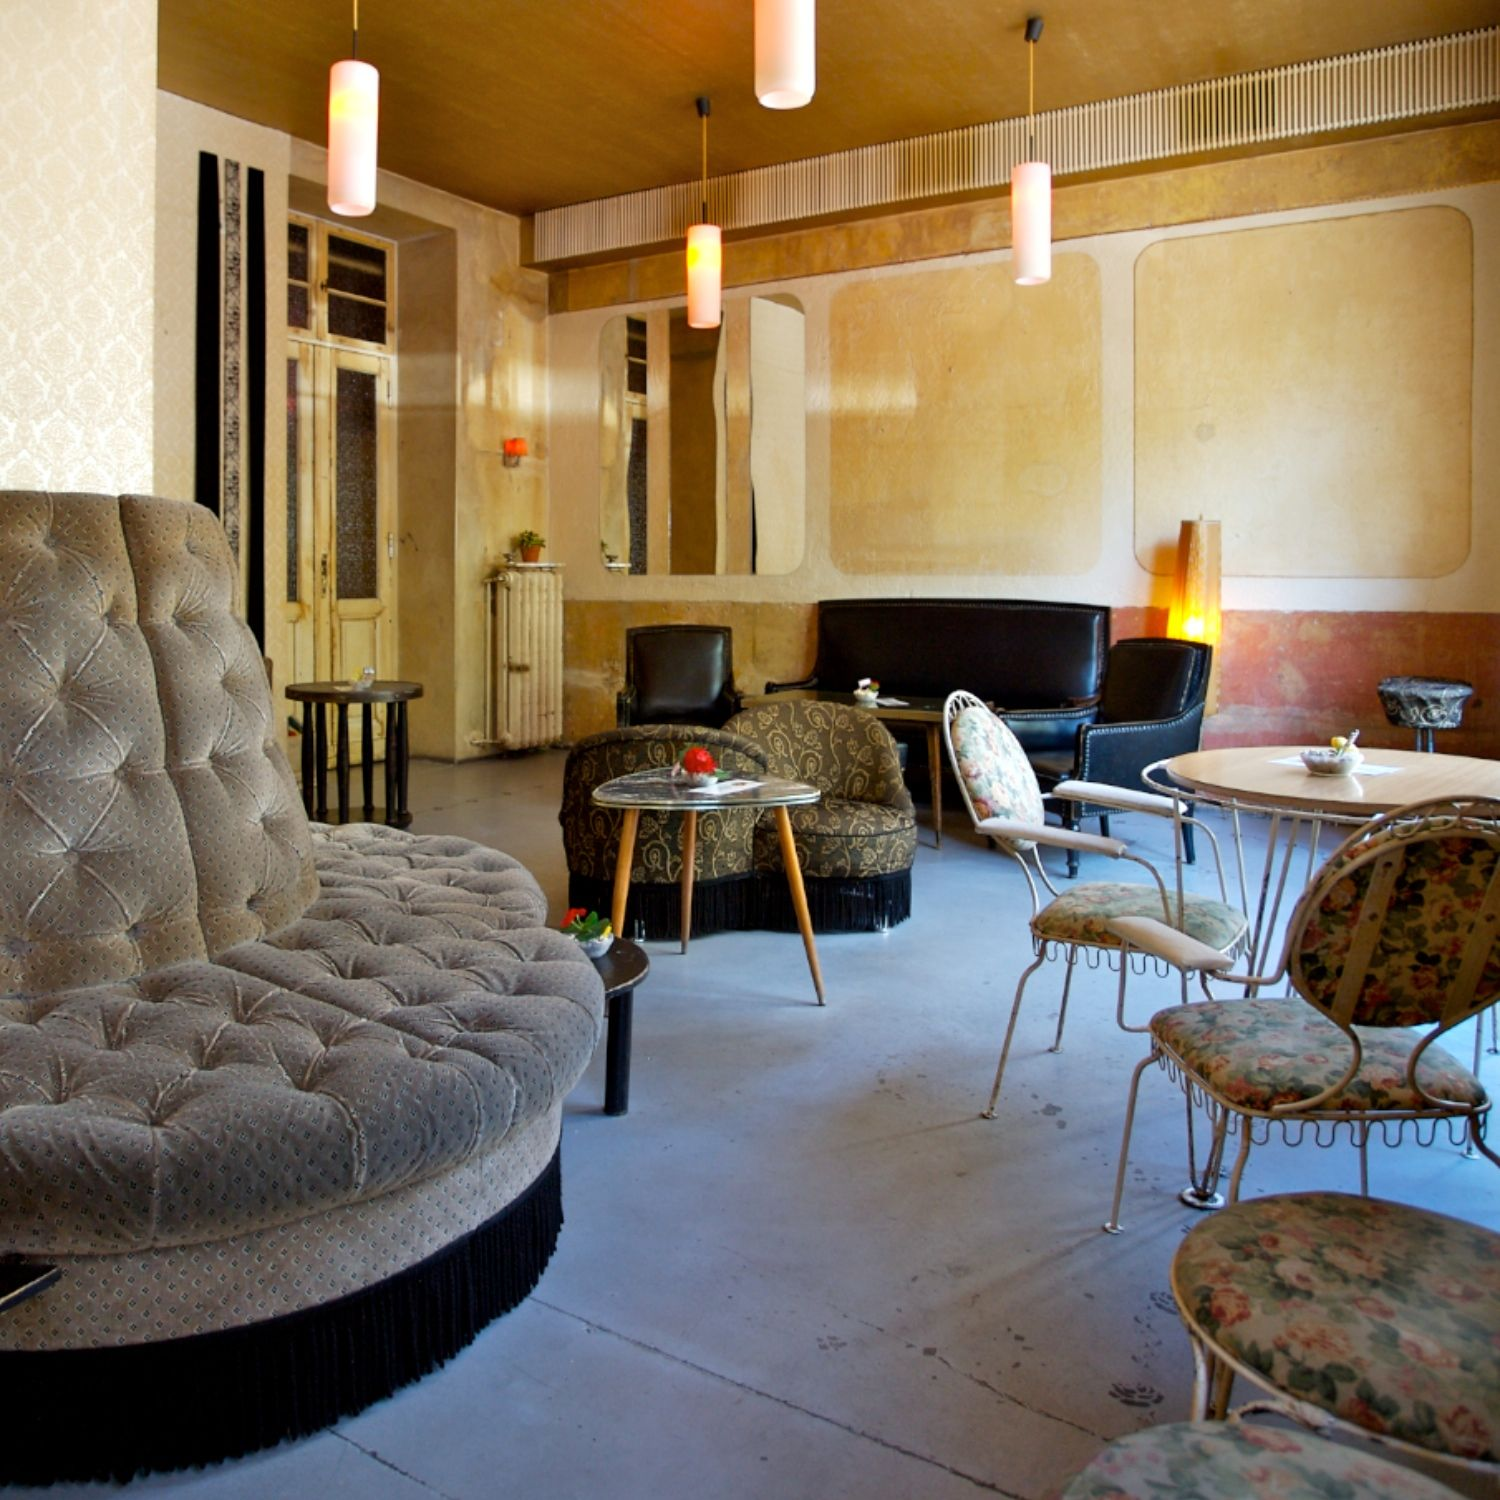 Wohnzimmer Berlin   the epitomy of faded grandeur   http   www     Wohnzimmer Berlin   the epitomy of faded grandeur   http   www wohnzimmer  bar de